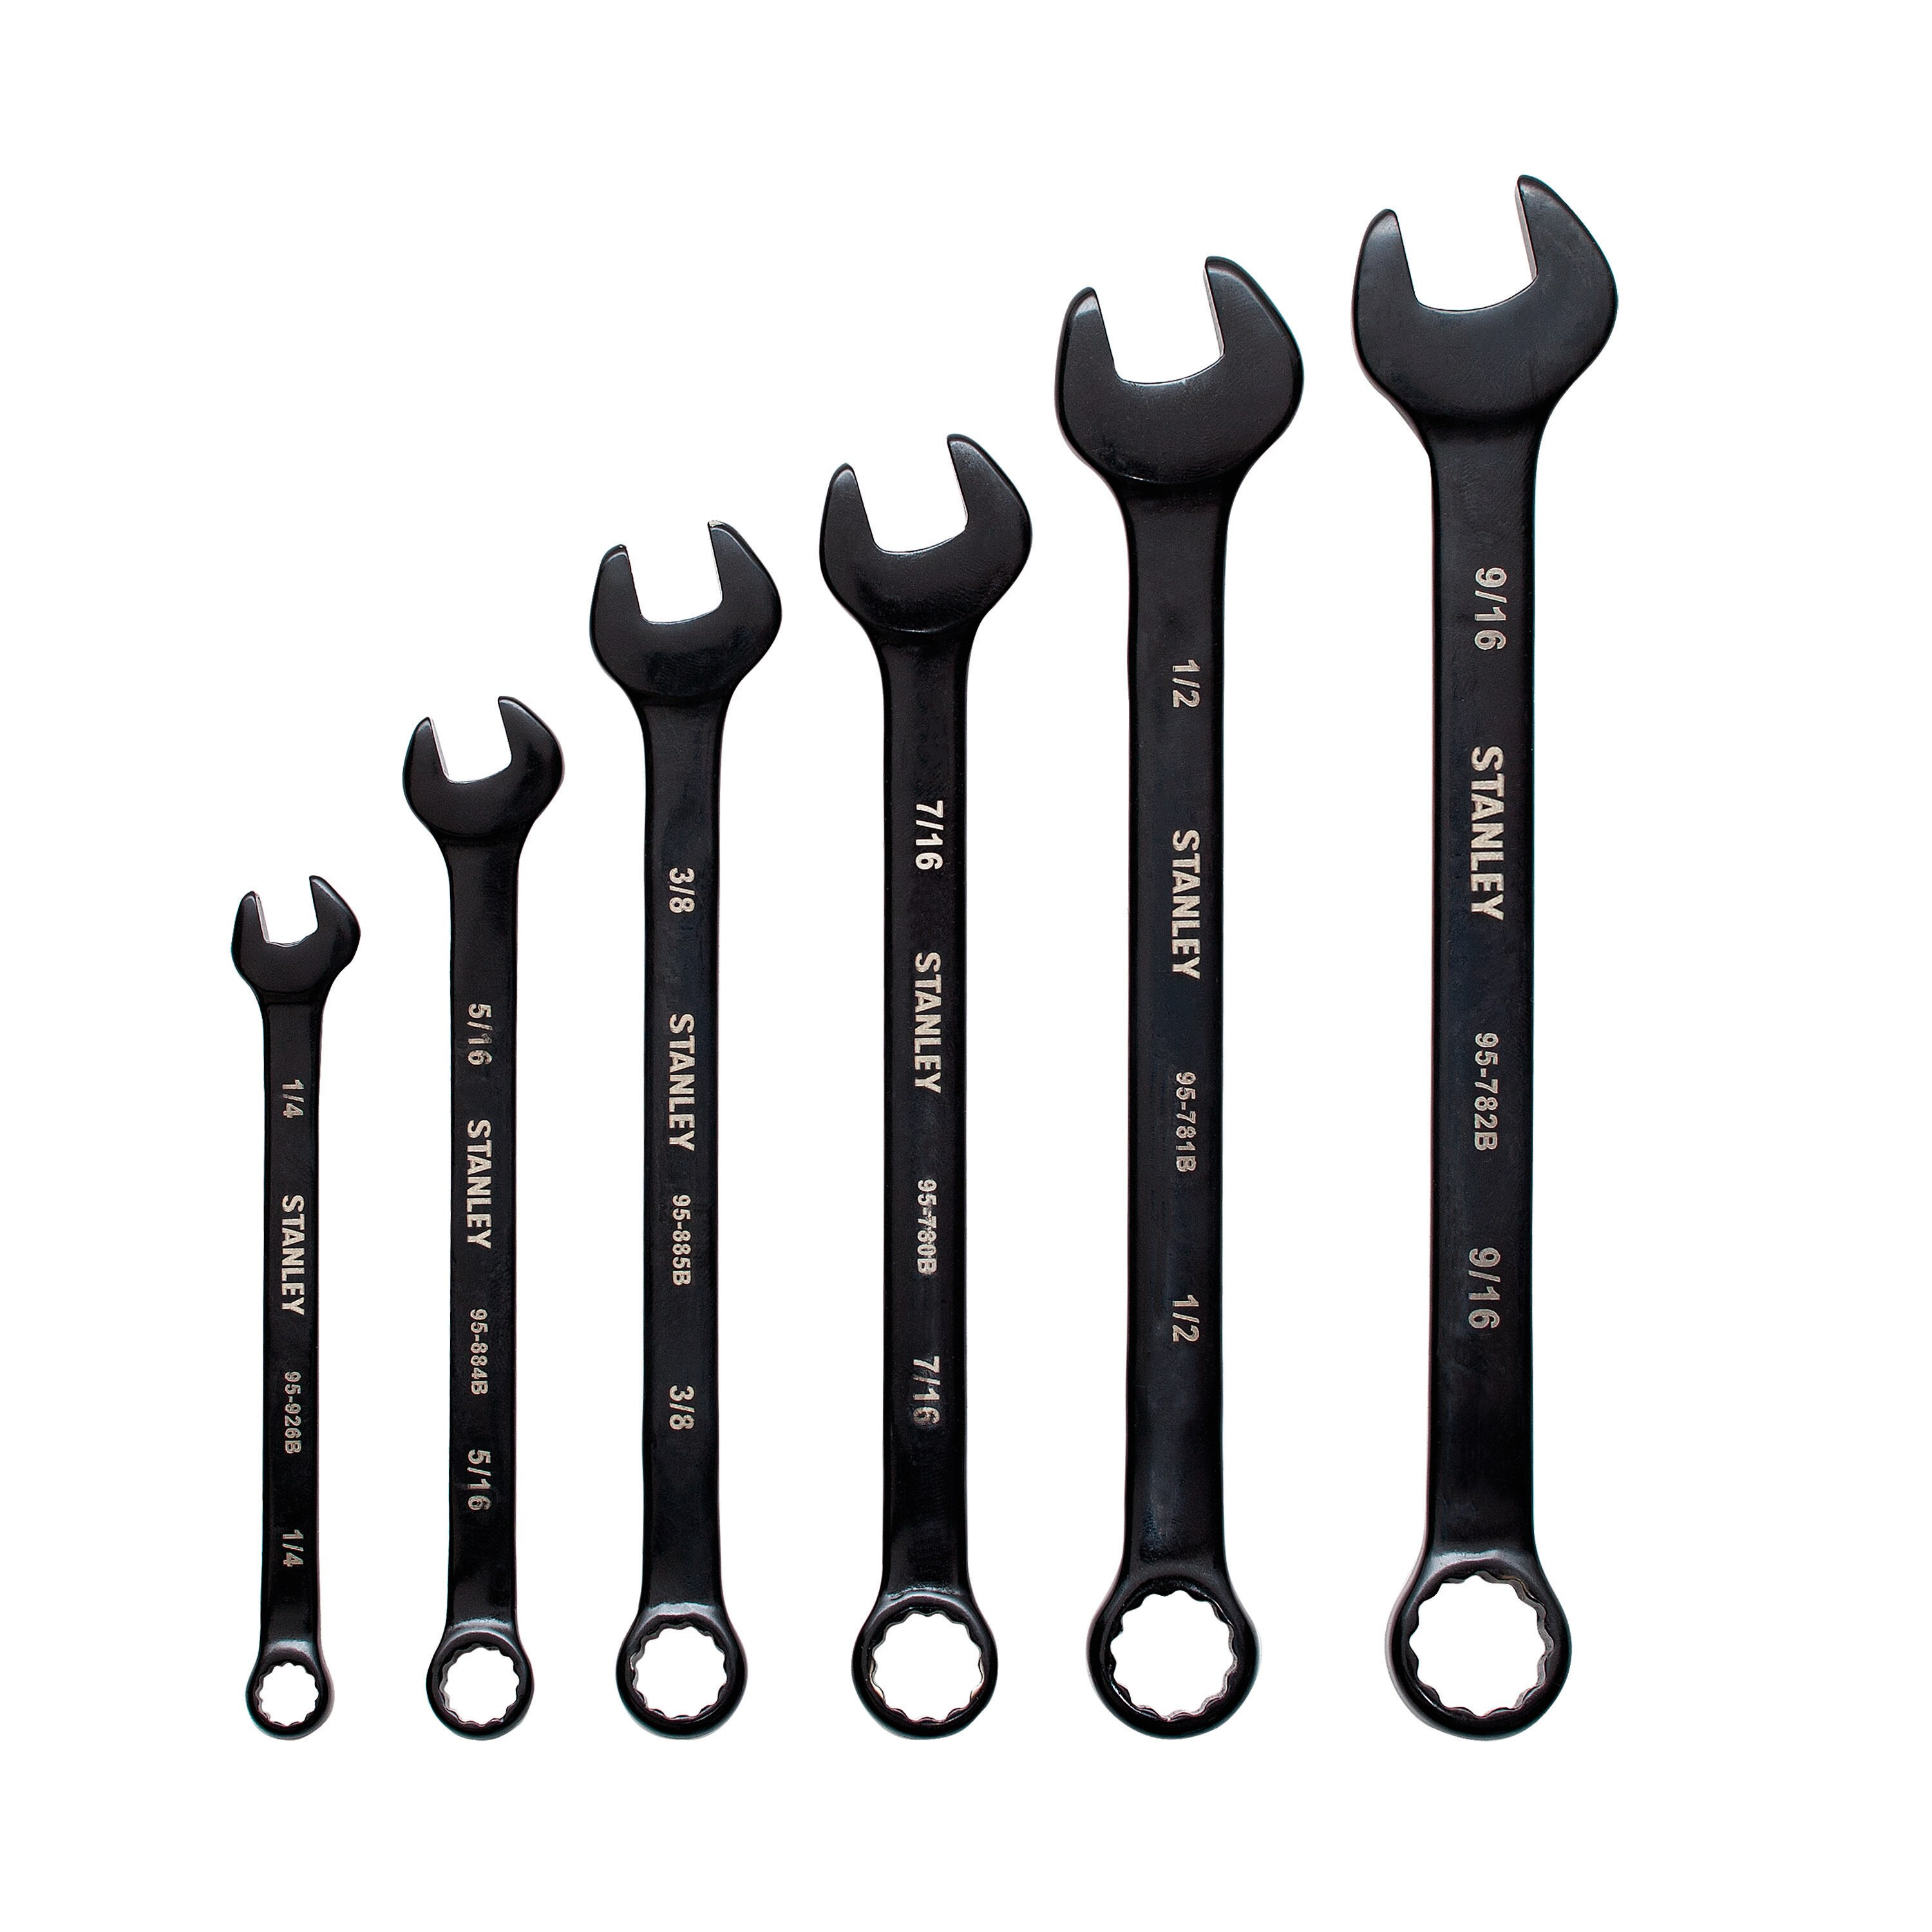 Stanley Tools - 6 pc Black Chrome Combination Wrench Set - STMT76005